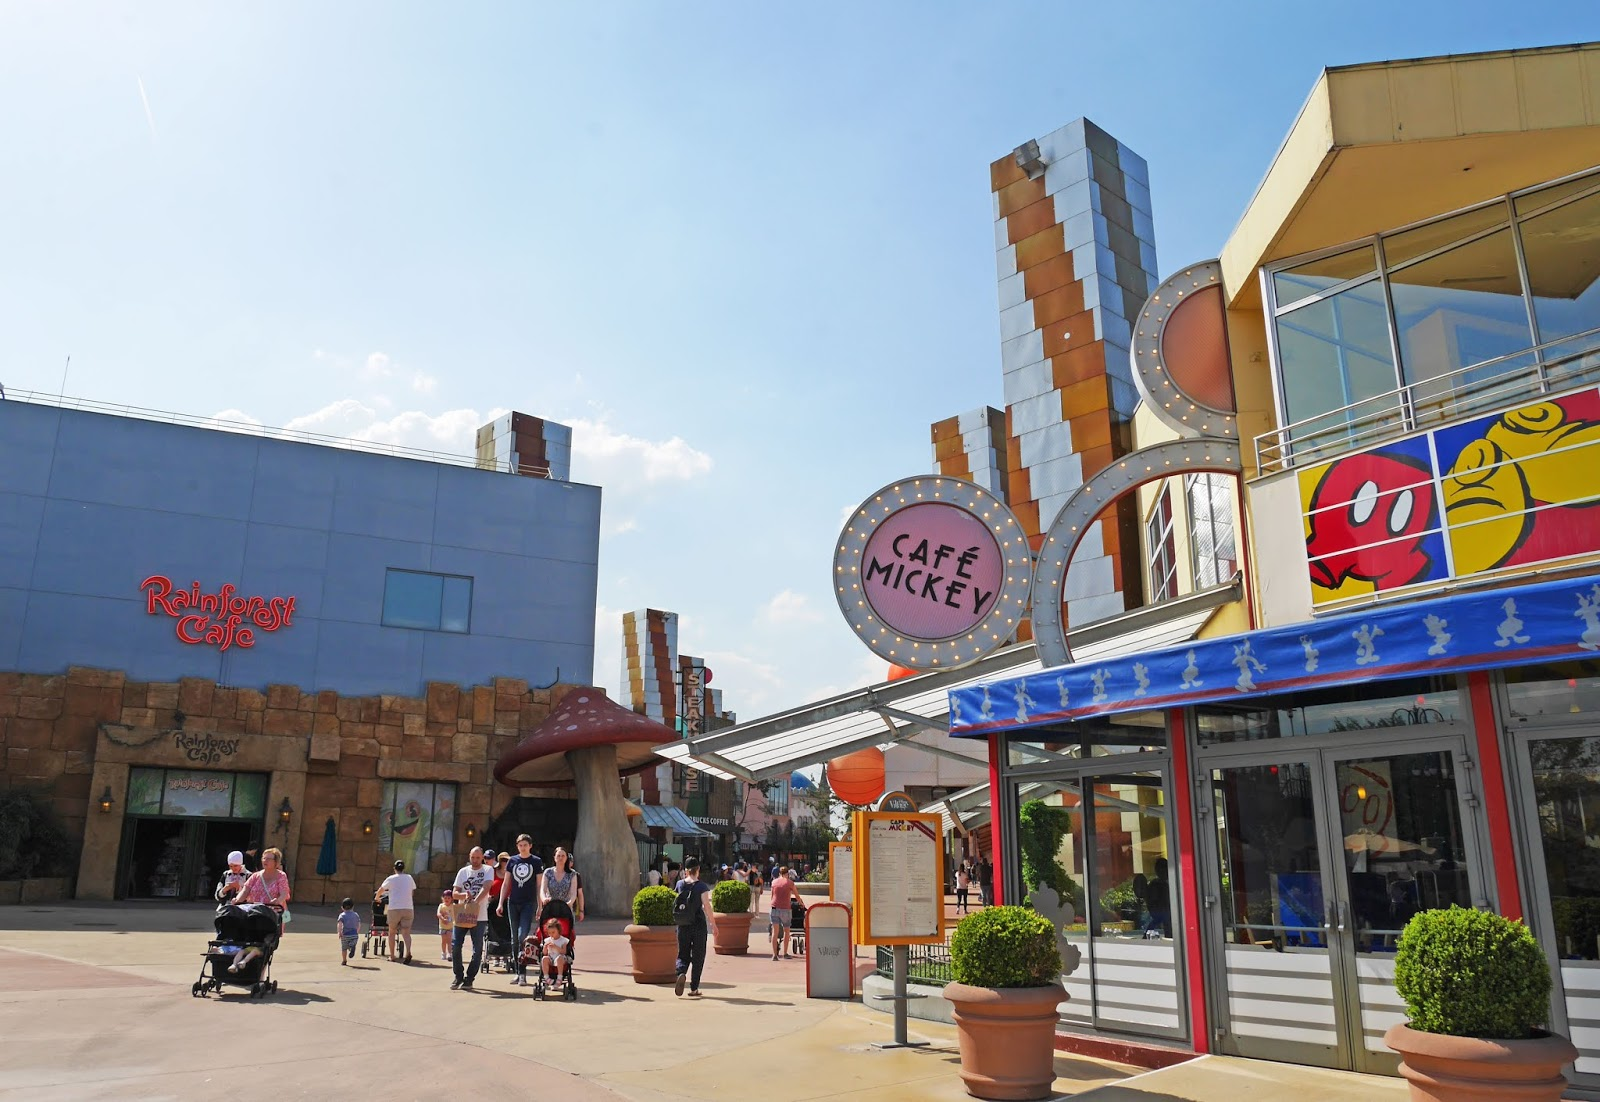 Disney Village at Disneyland Paris